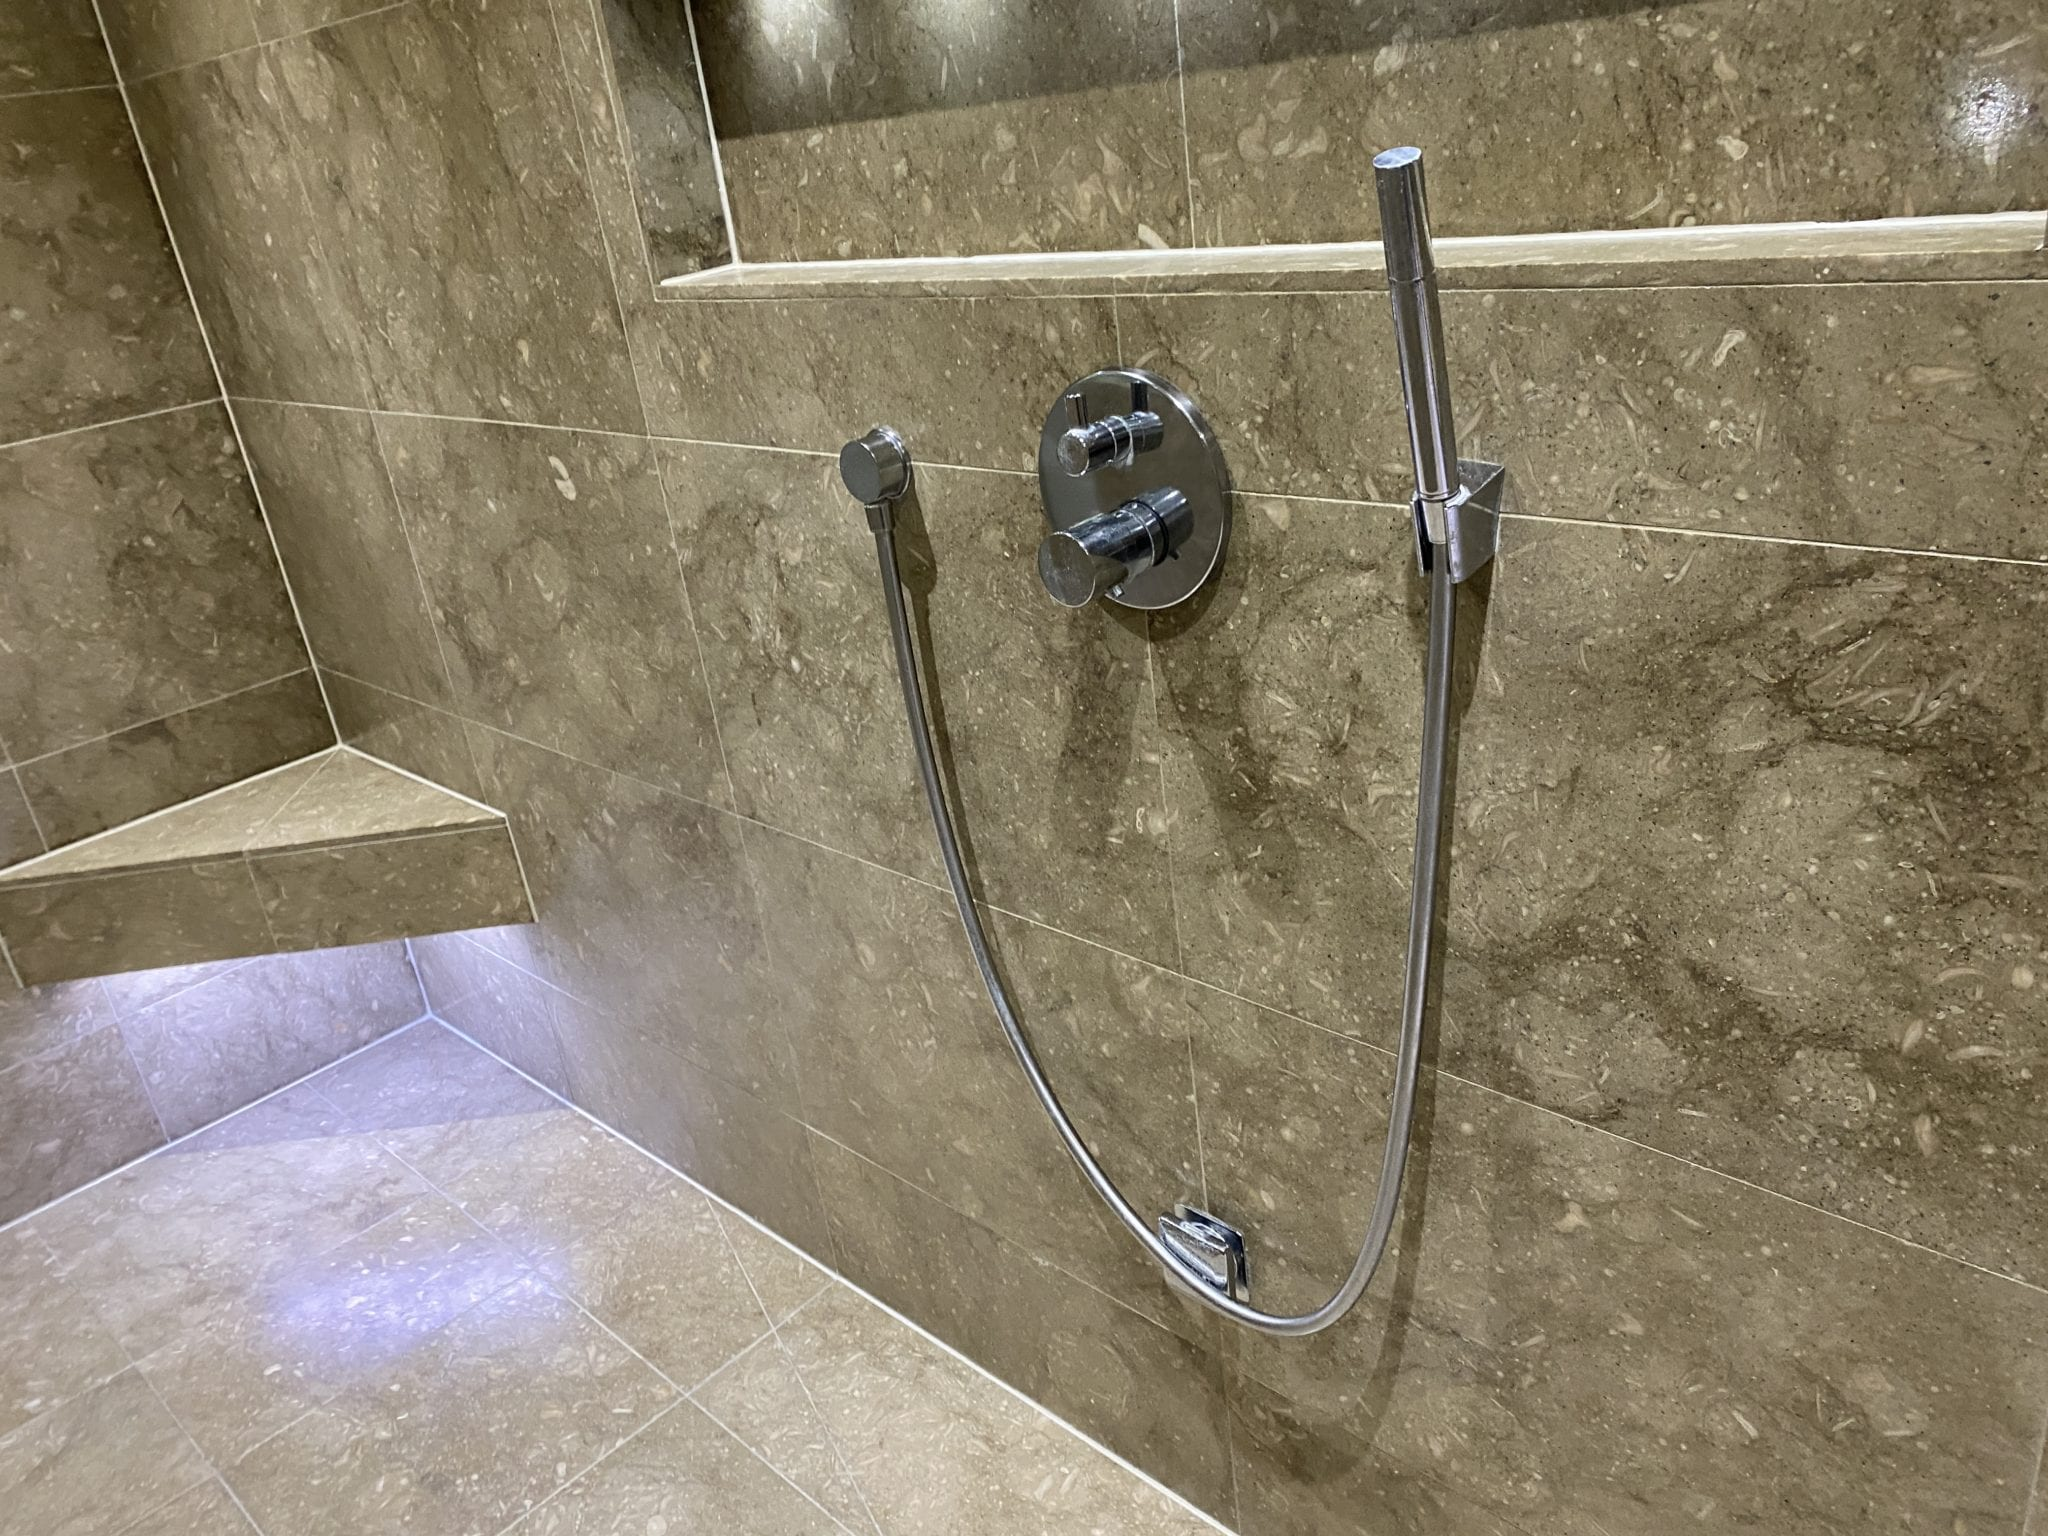 Removing limescale from stone shower walls